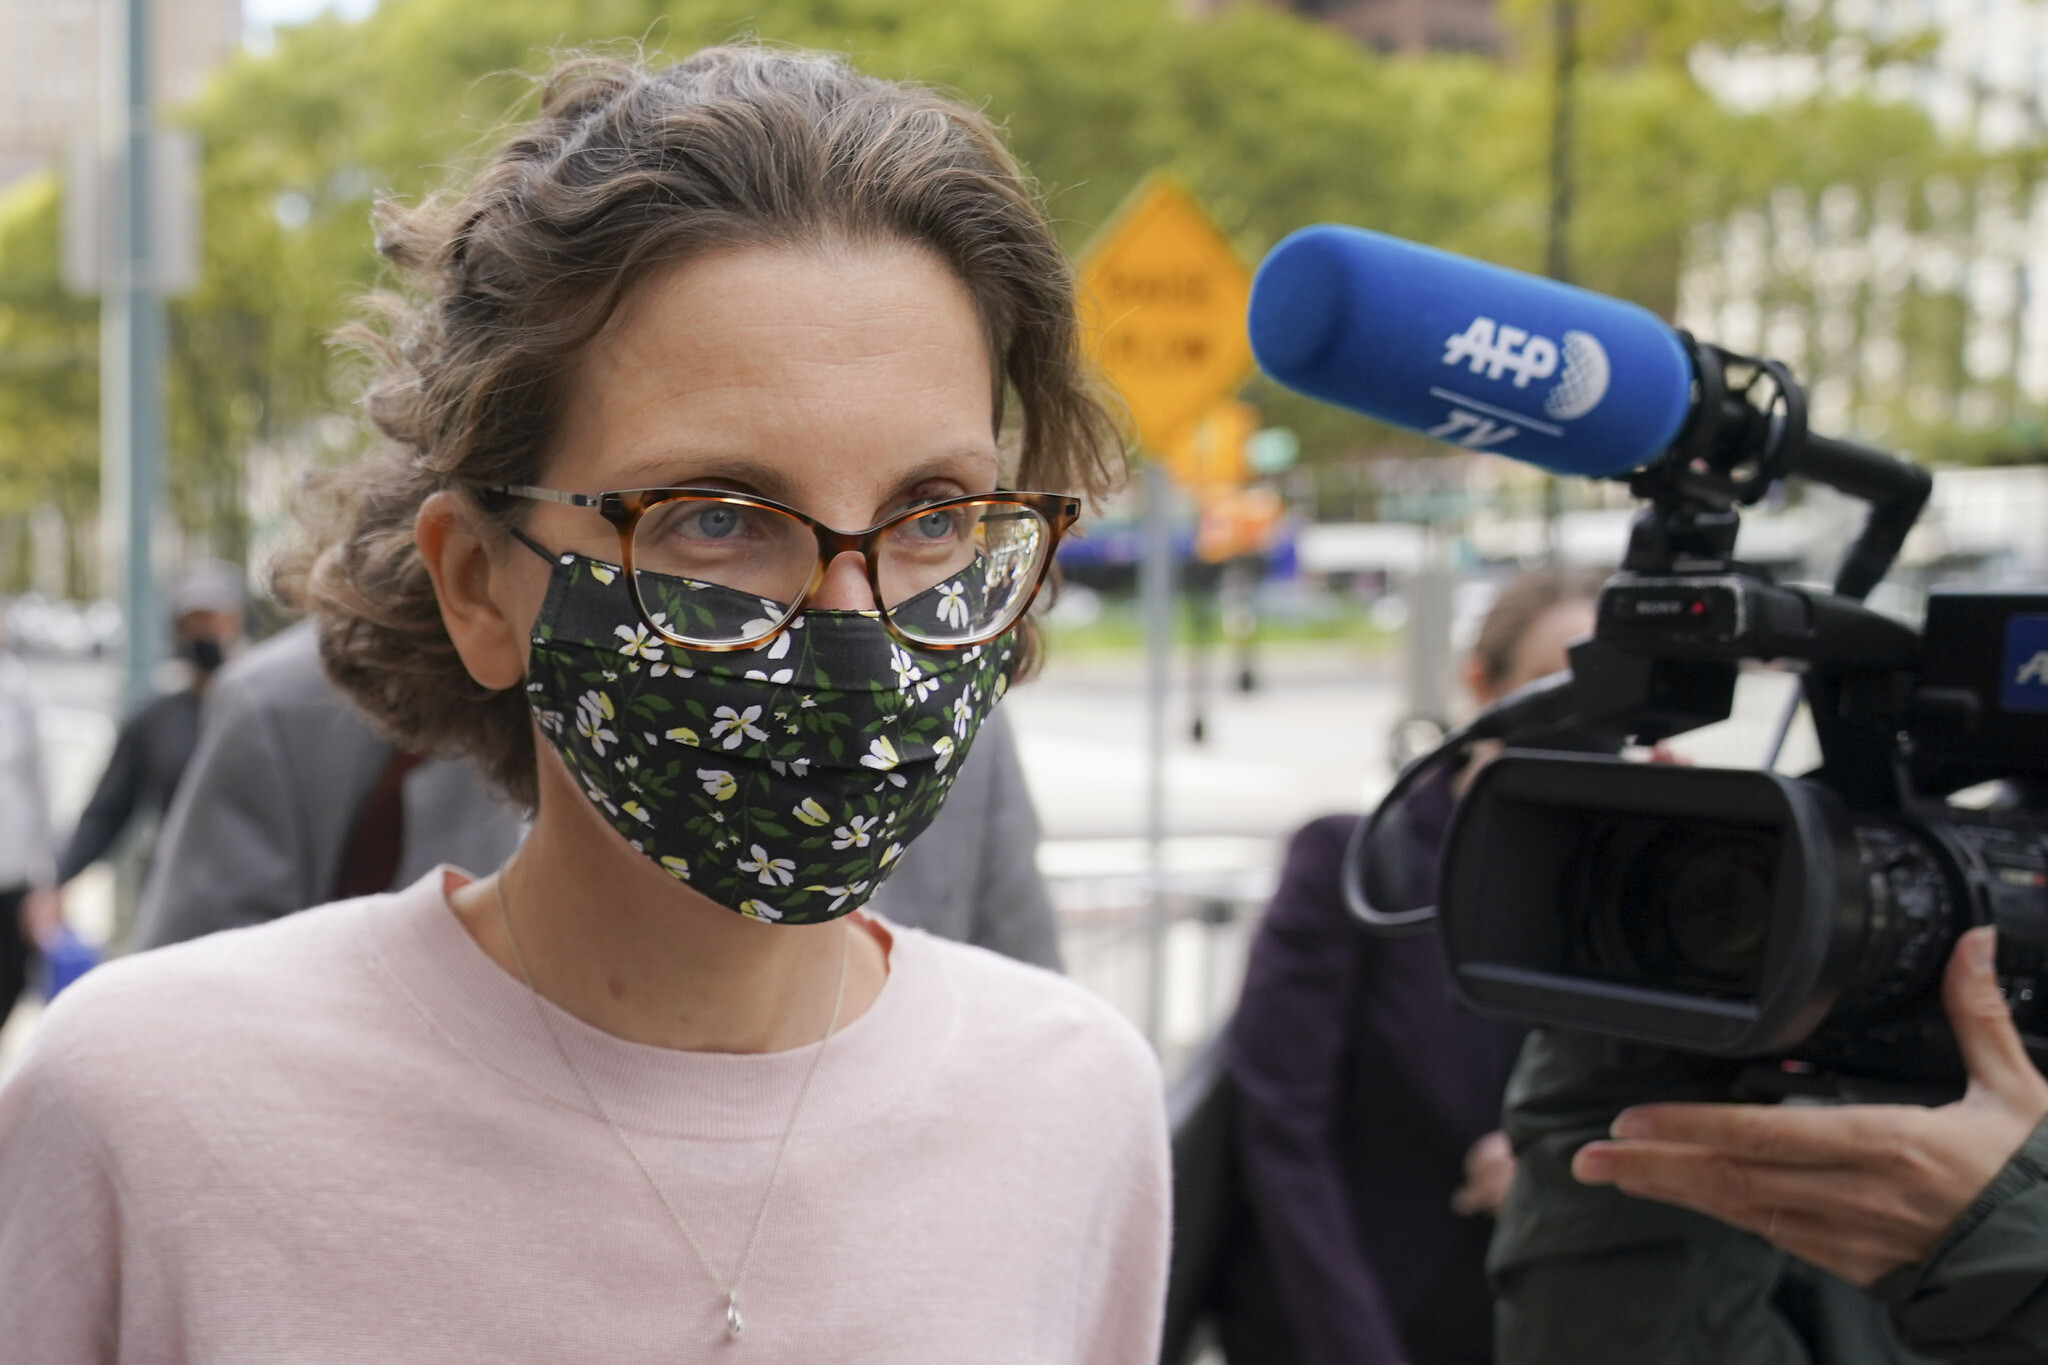 Canadian Seagram heiress Clare Bronfman jailed for bankrolling sex cult Nxivm